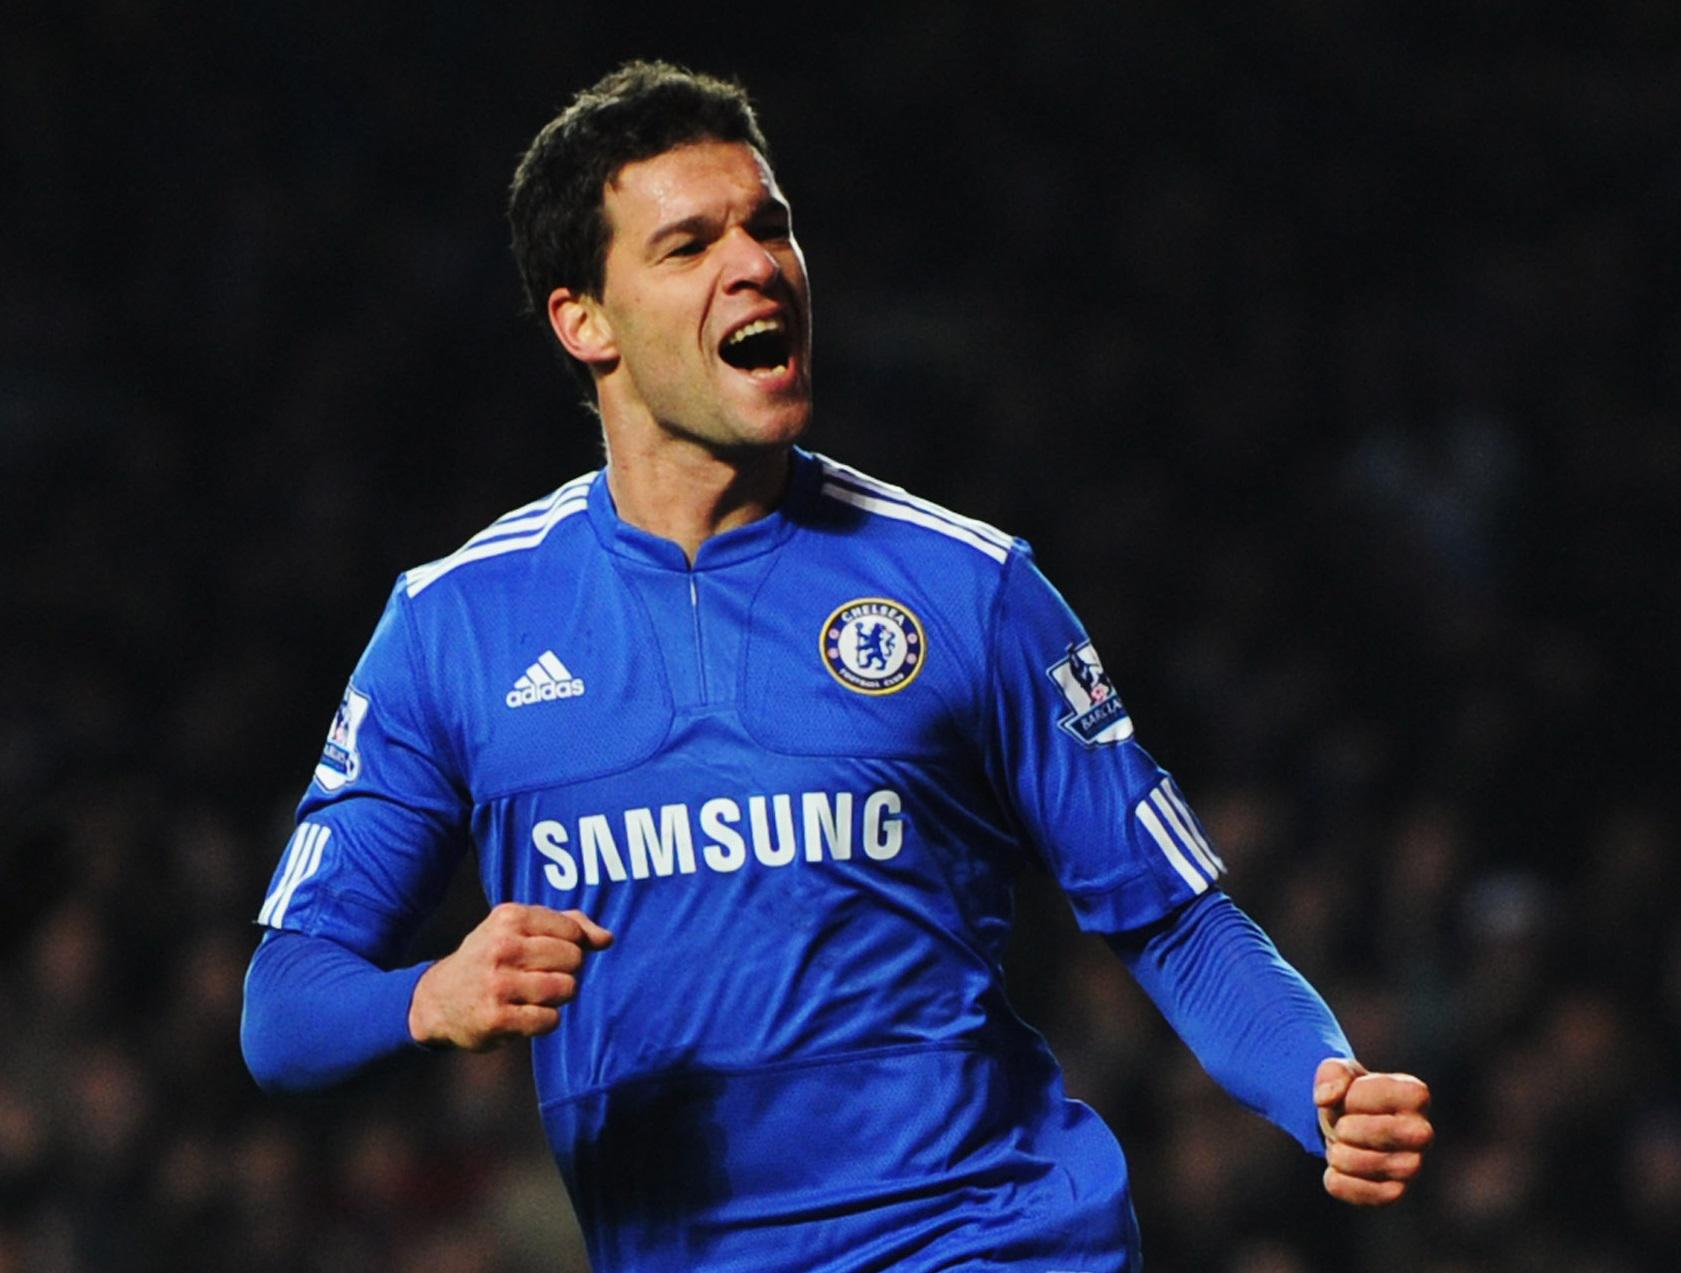 Ballack backs Bayern Munich to beat Chelsea in the Champions League